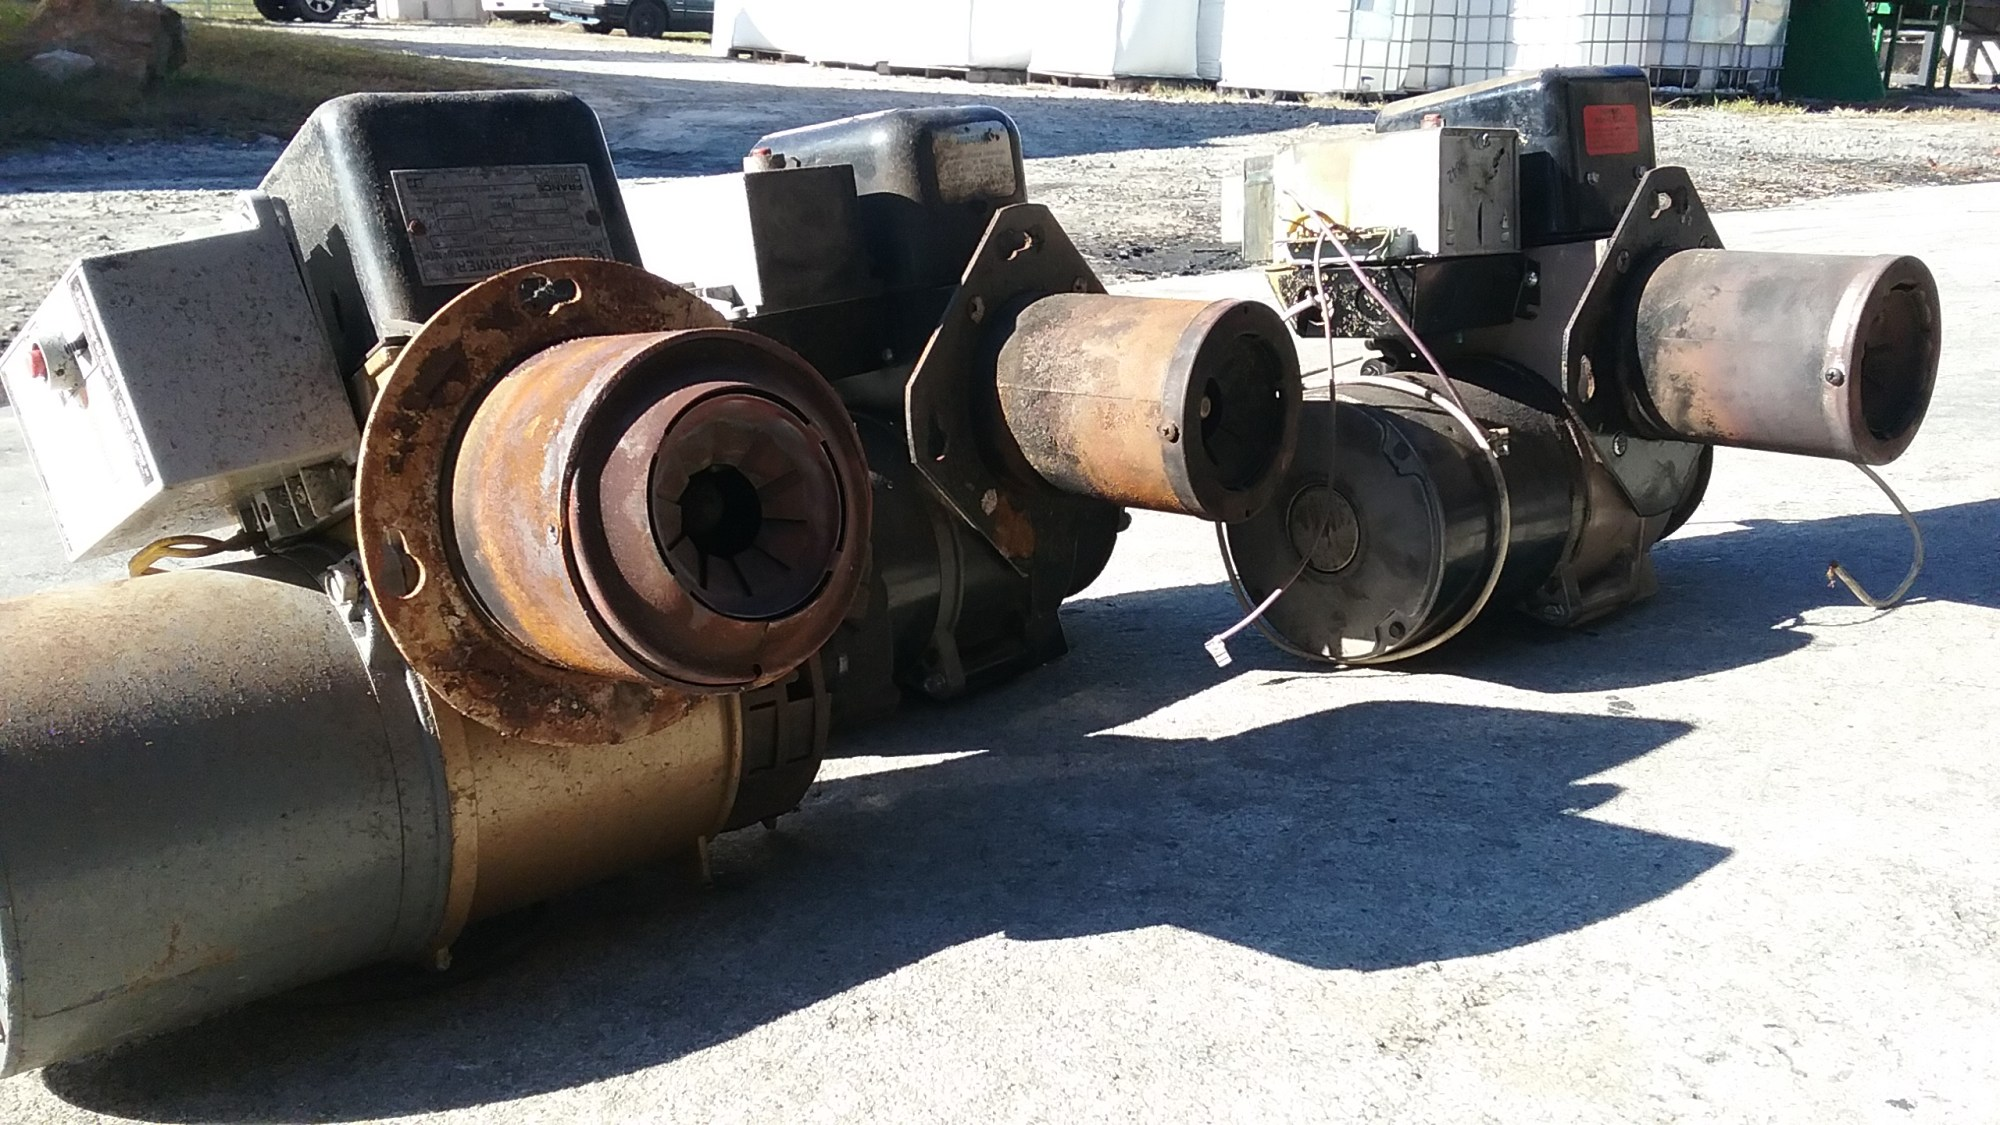 hight resolution of these gun style burners were pulled out of old furnaces instead of getting crushed at the the junkyard conventional oil burners can be modified to accept